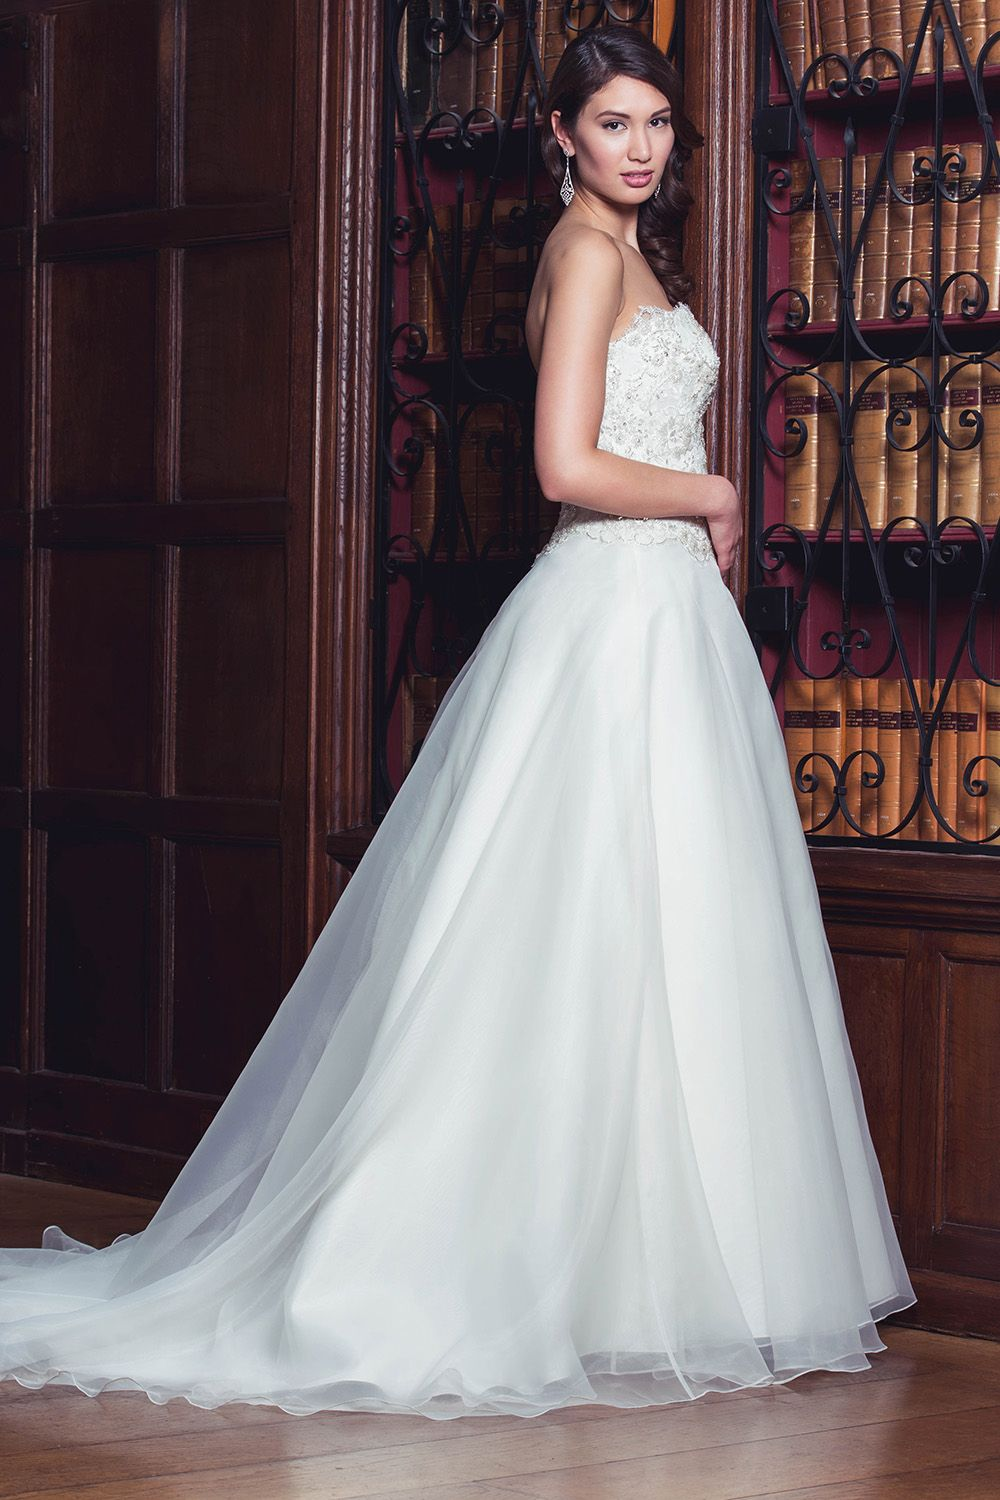 Emma by Augusta Jones. 2014 Collection. A Timeless Classic